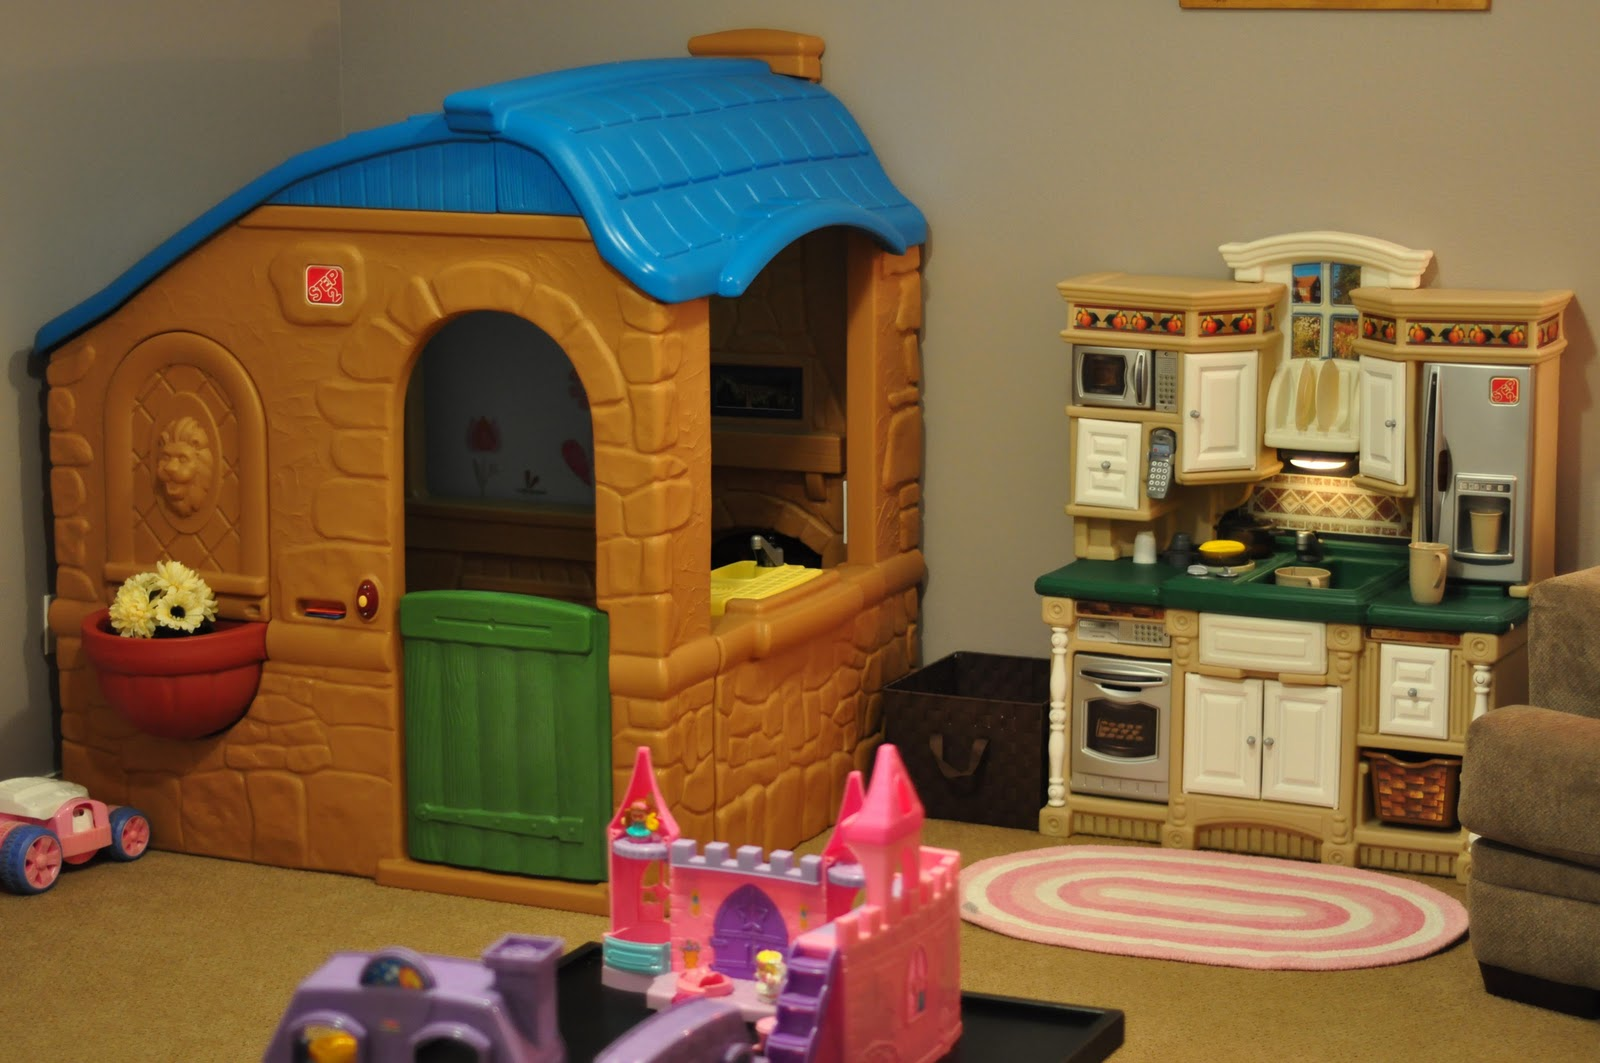 The Playhouse Is Step2 Countryside Cottage Kitchen Lifestyle Dream